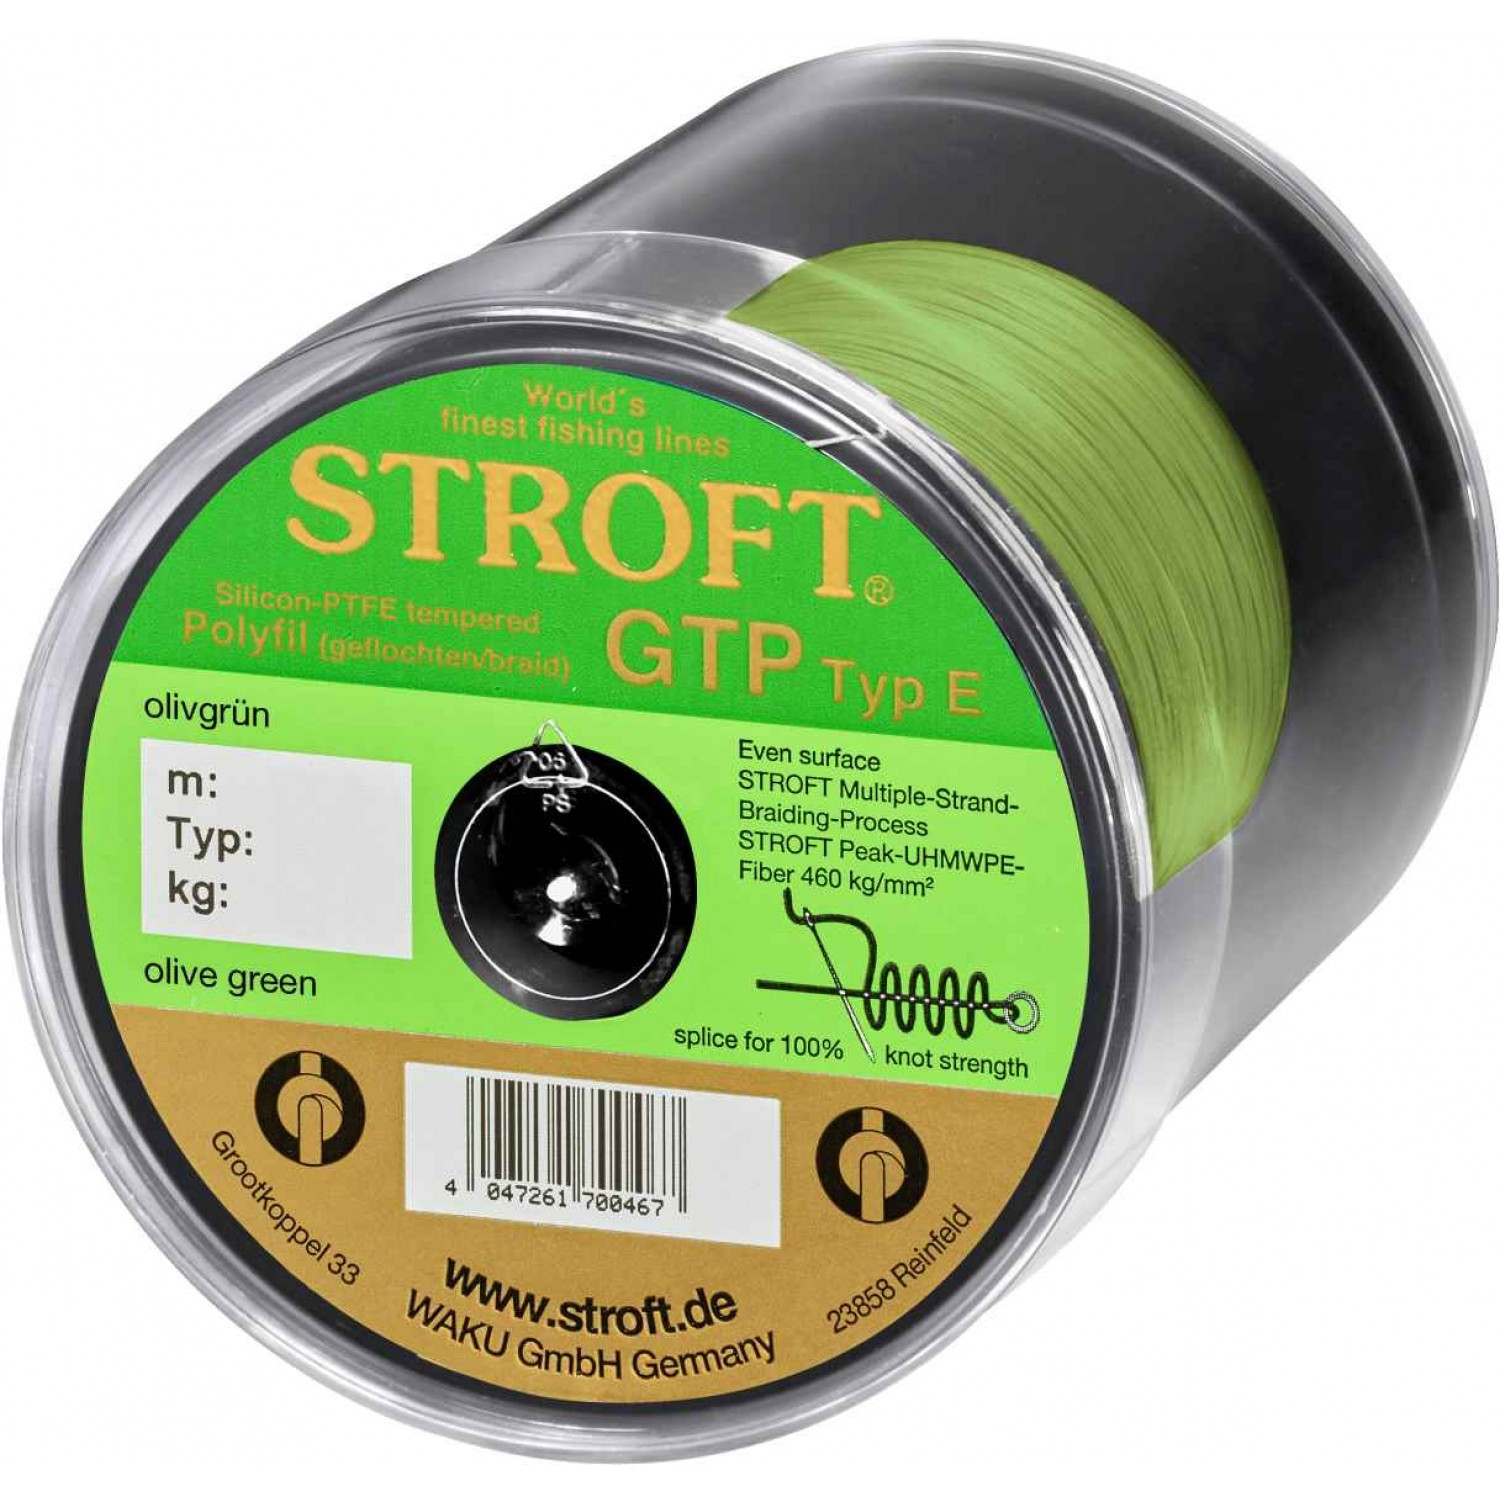 Stroft GTP Olive Green 500m Typ E